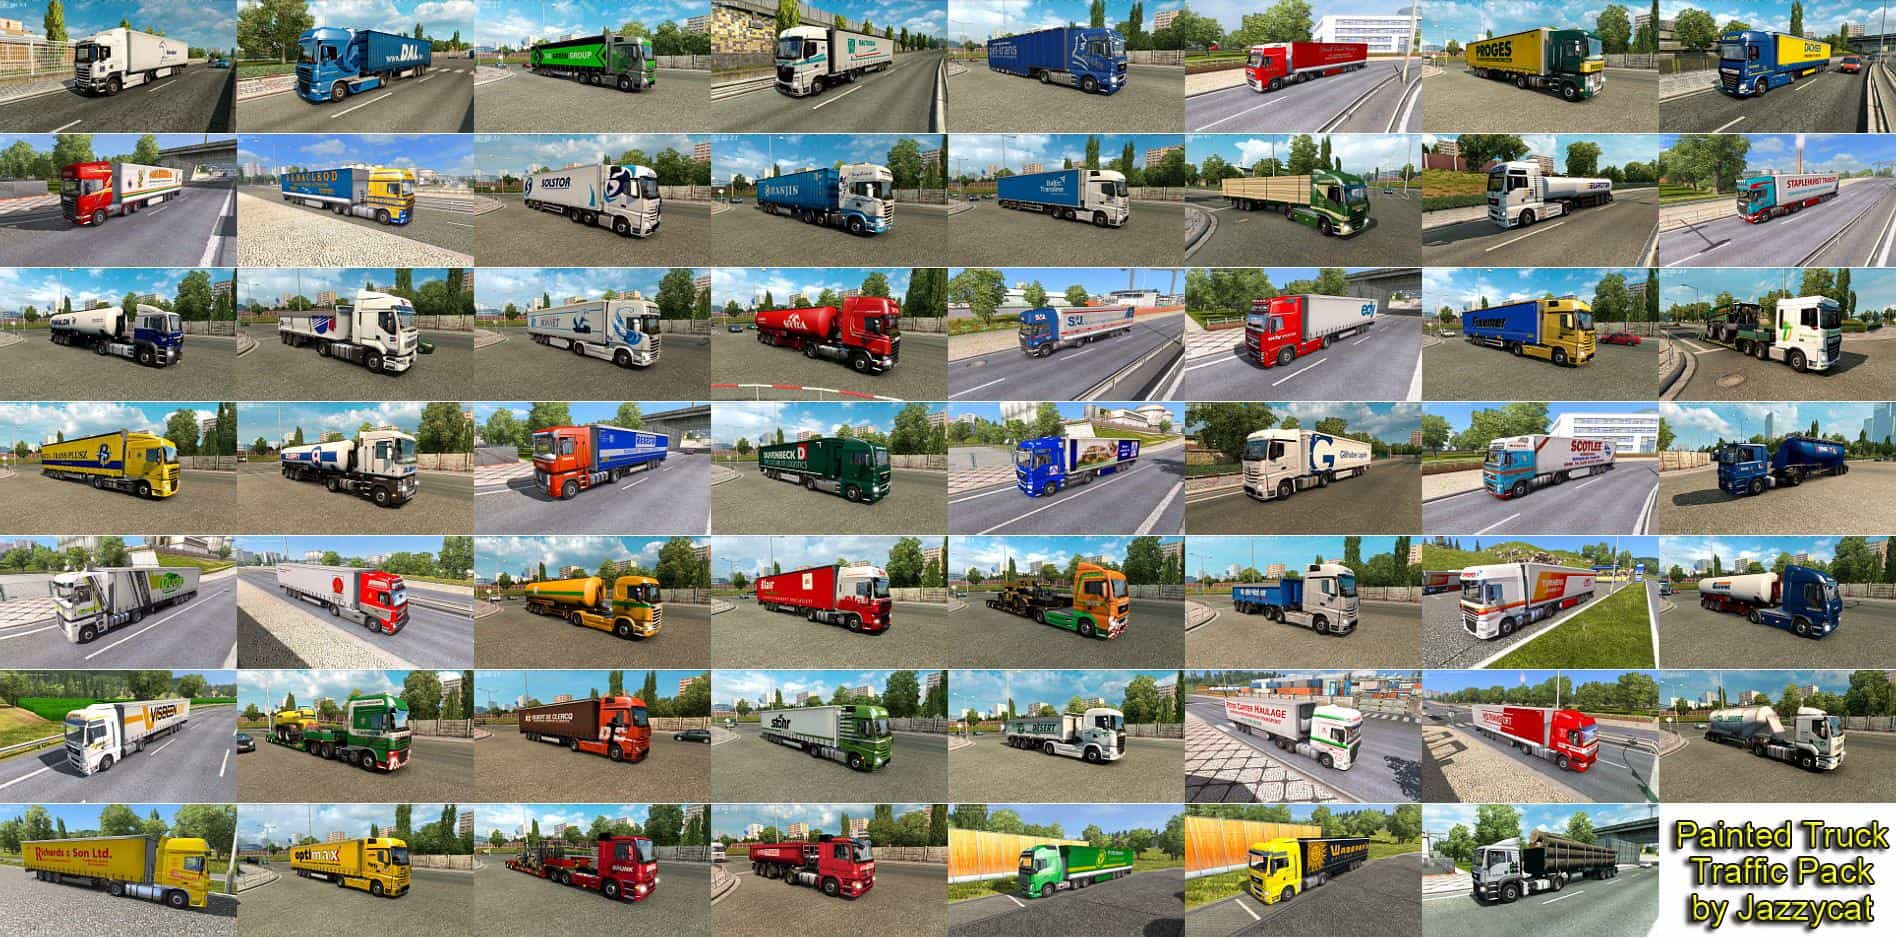 PAINTED TRUCK TRAFFIC PACK BY JAZZYCAT V7 7 ETS2 - ETS2 Mod